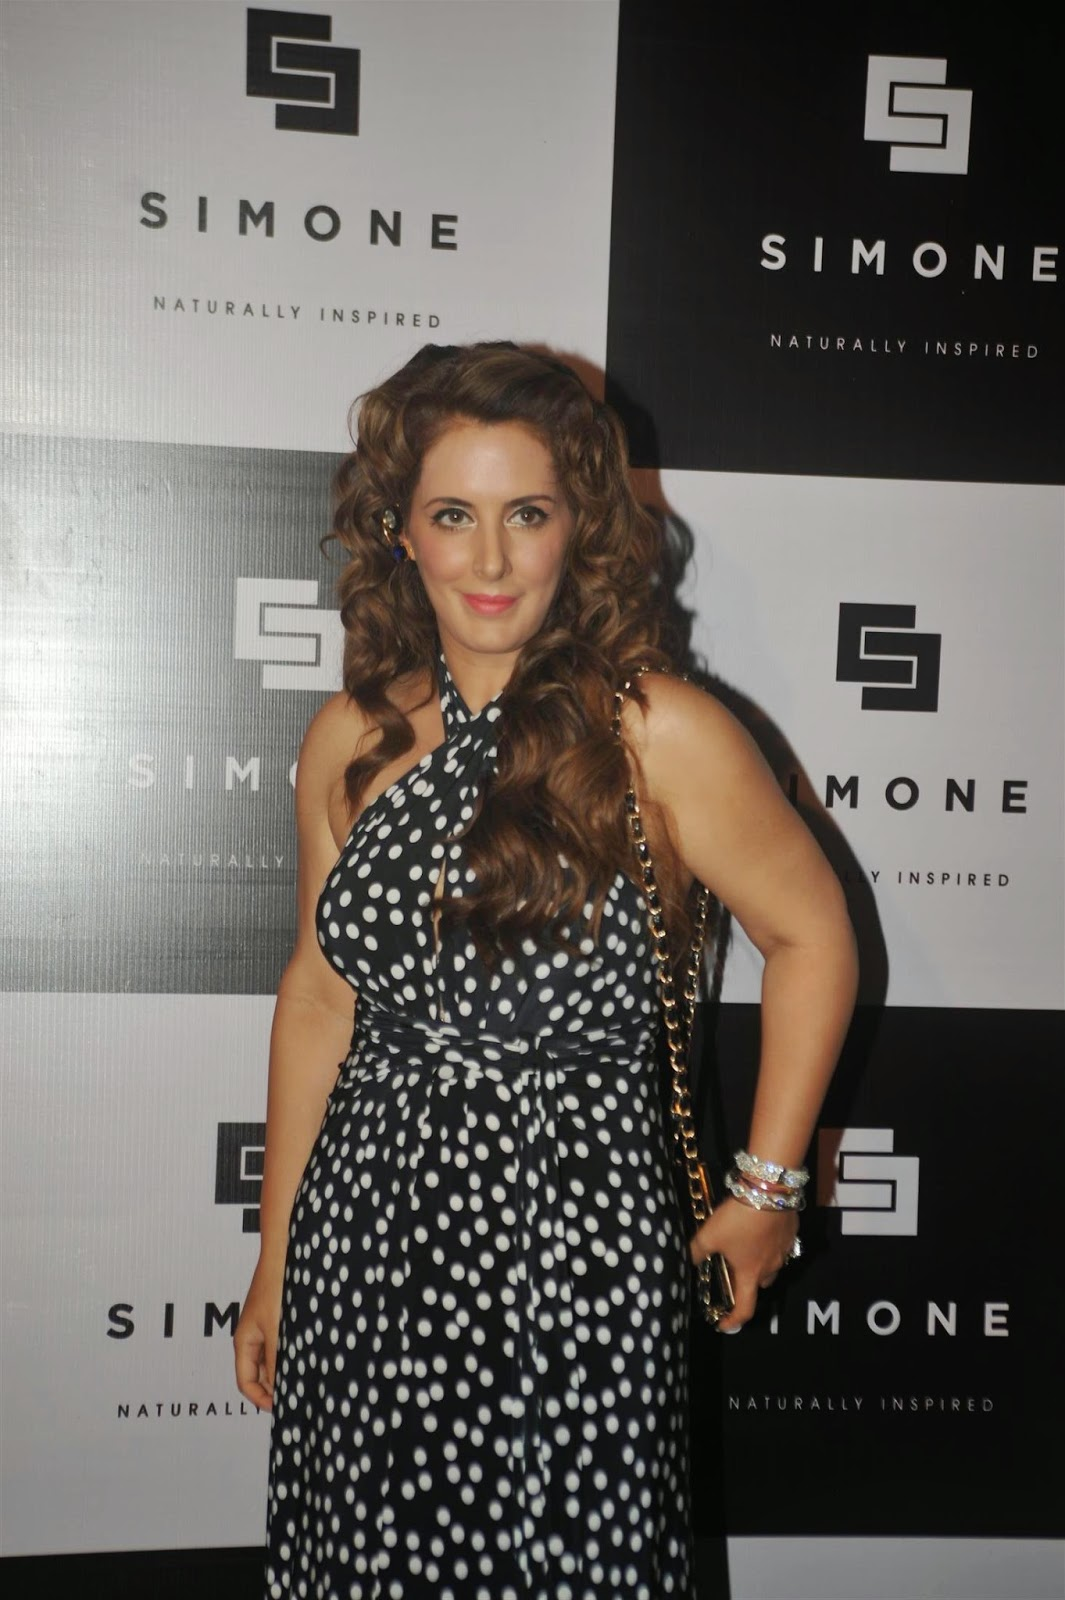 Celebrities at Simone Store Launch Event Photo Shoot